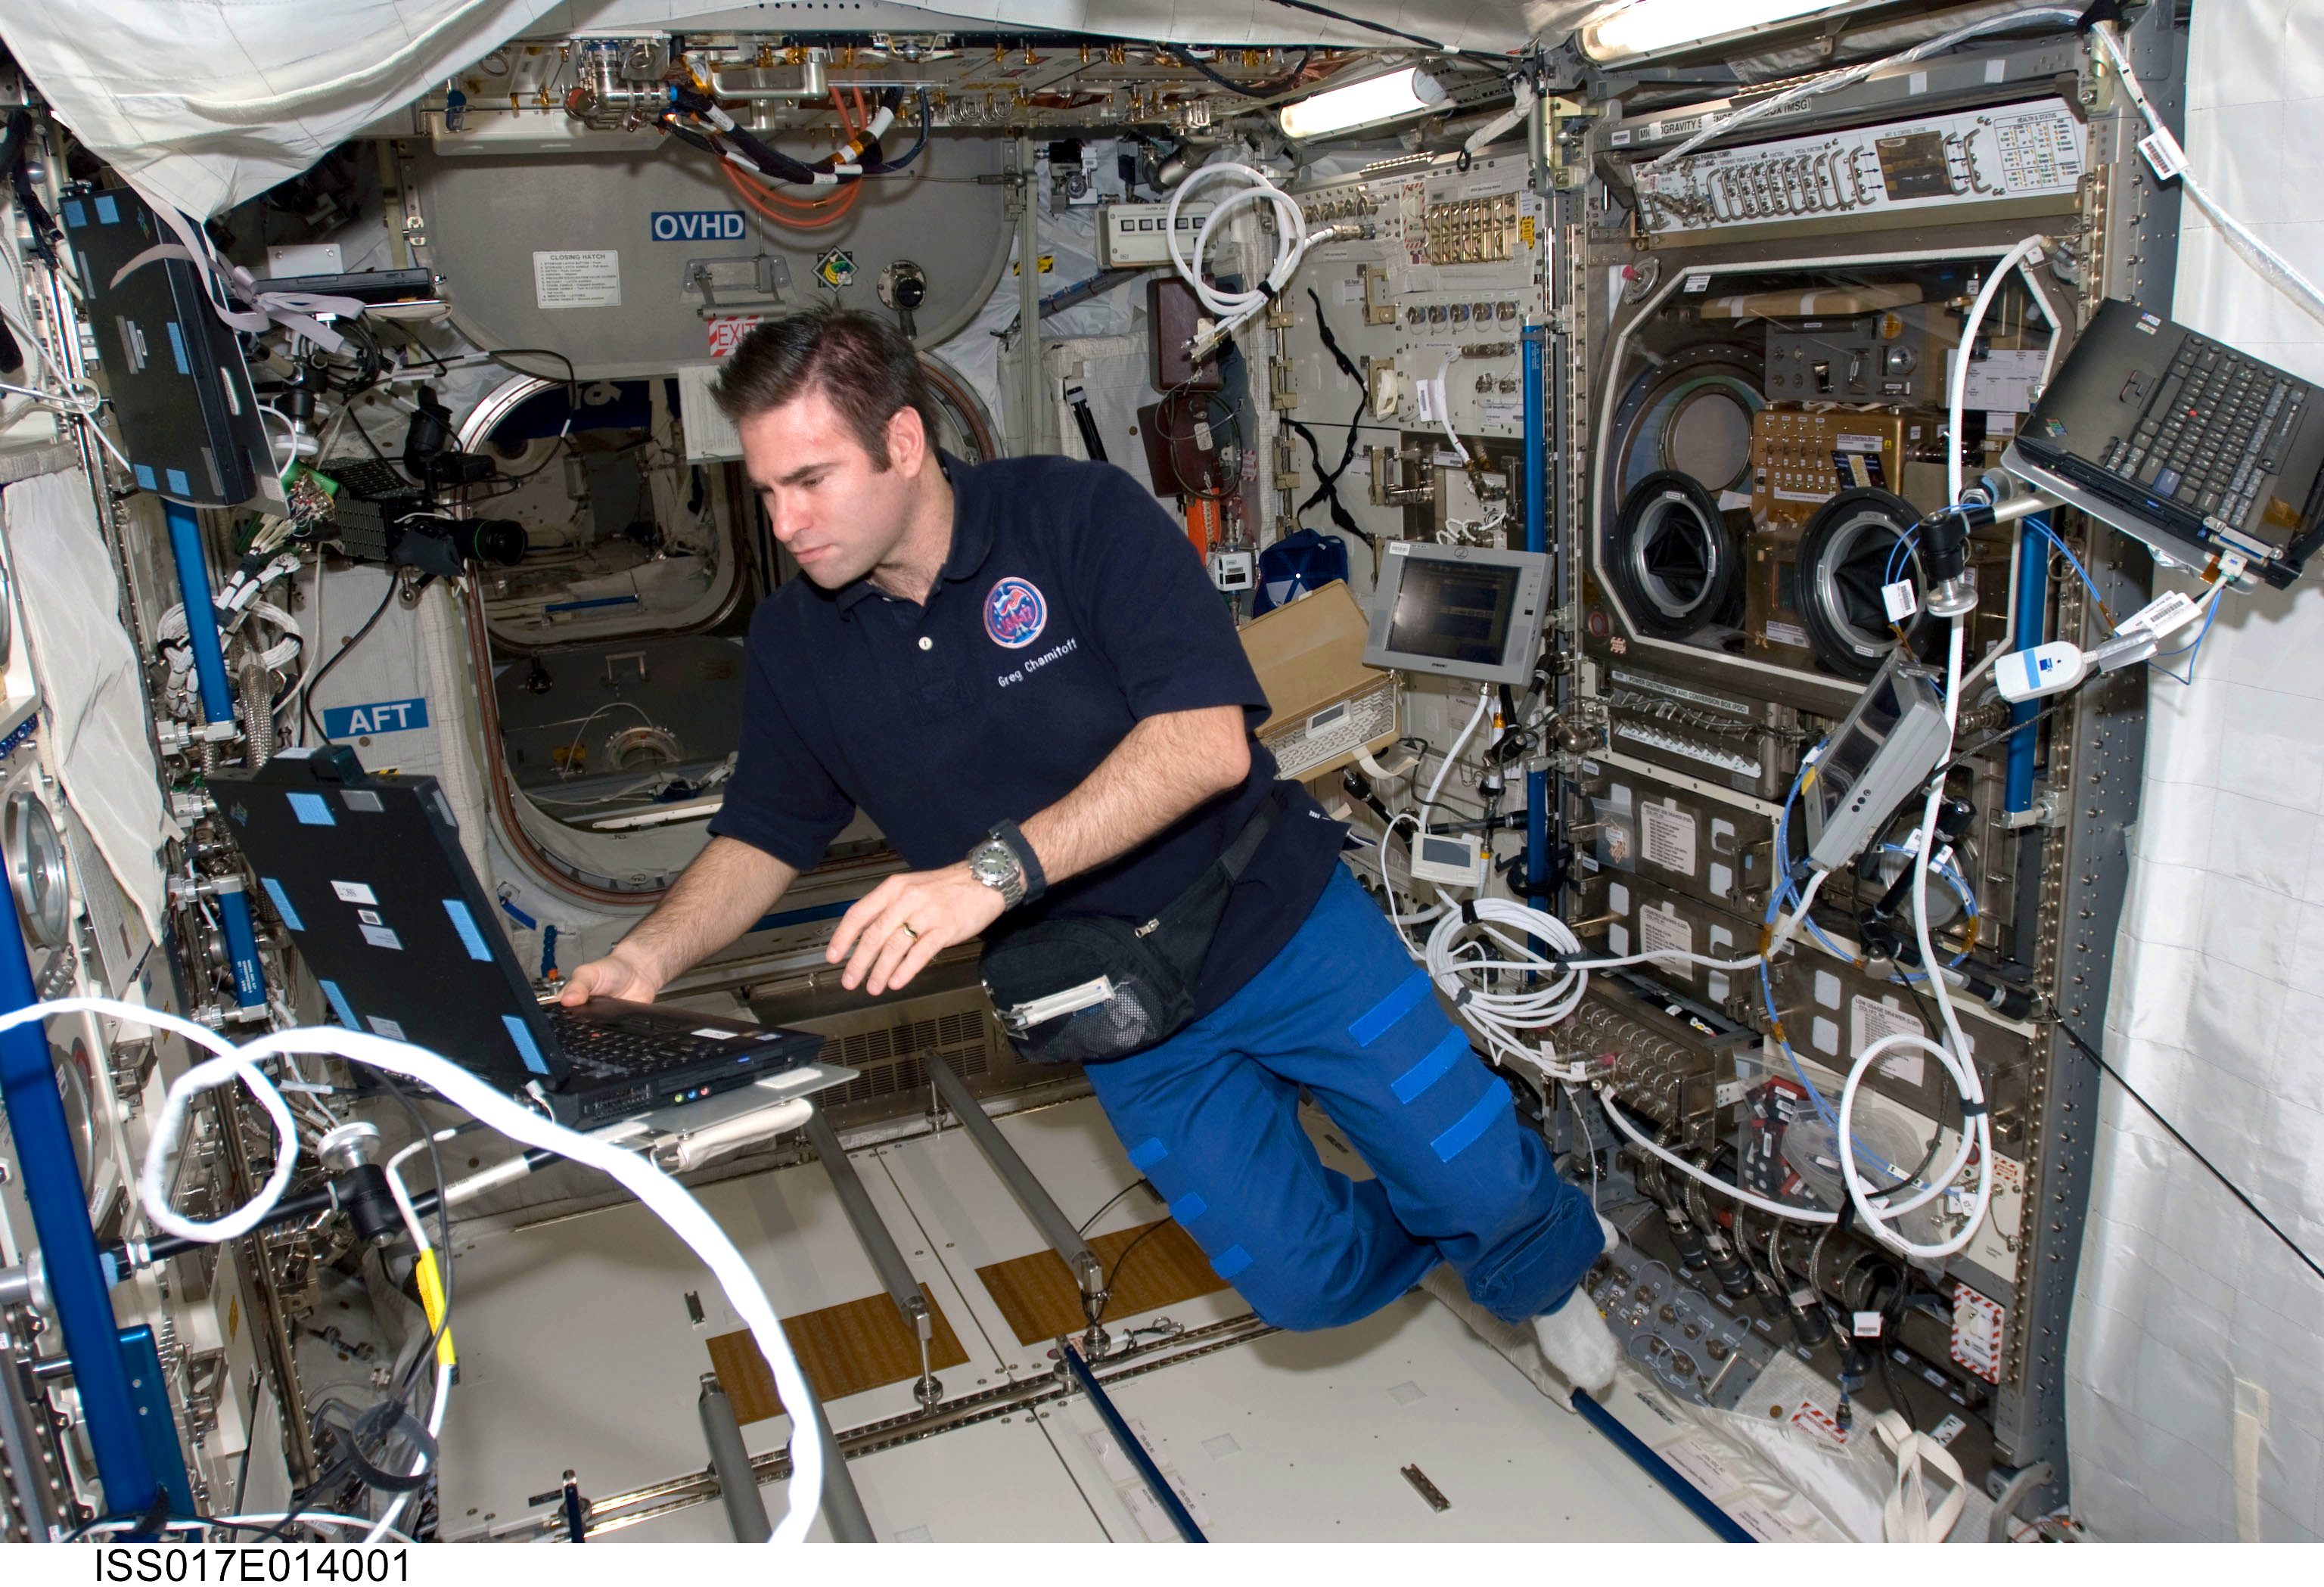 Inside International Space Station Nasa Nasa astronaut chamitoff worksNasa Space Station Inside